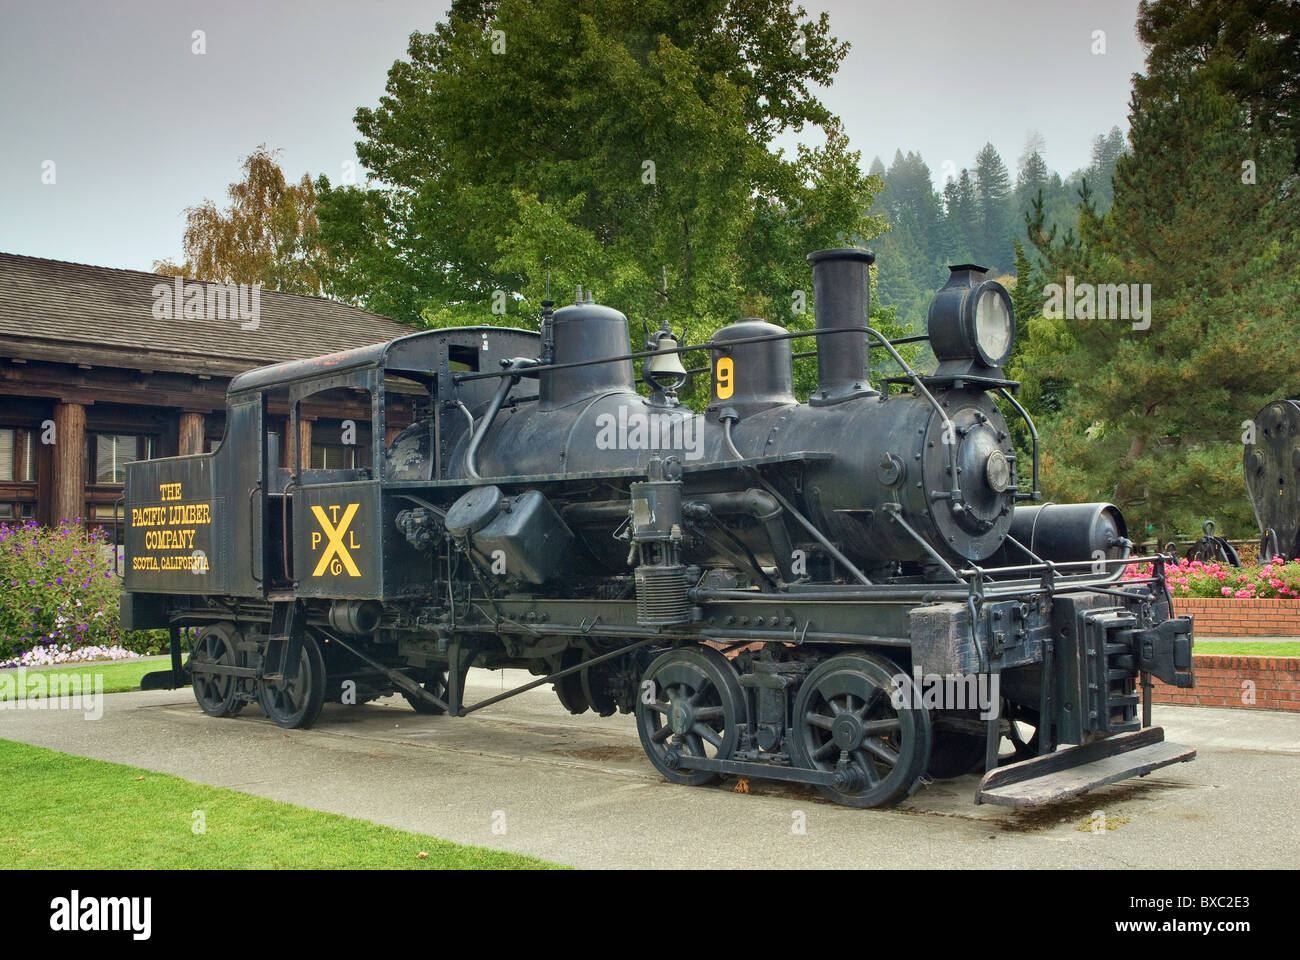 List Of Synonyms And Antonyms Of The Word Heisler Locomotive